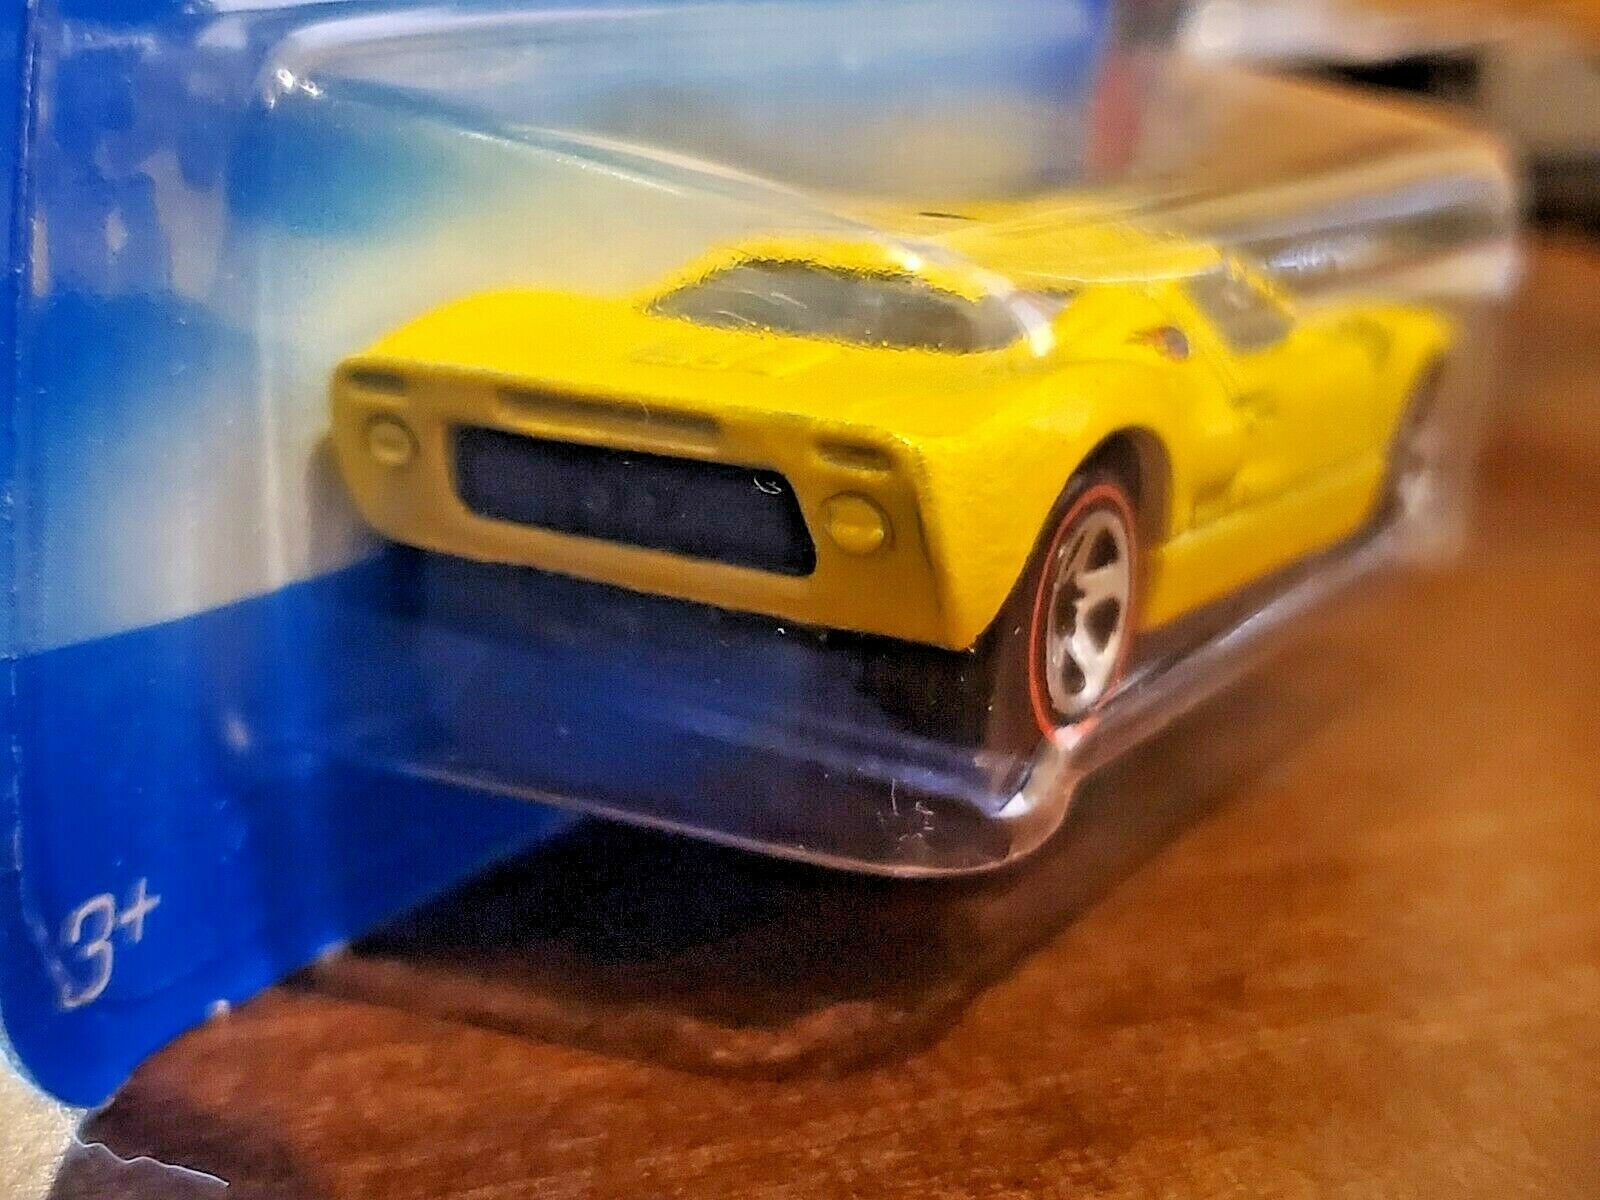 (eBay link) 2005 Hot Wheels RED LINES series 2/5 yellow FORD Shelby GT-40 moc 2/5 Nice! $0.99